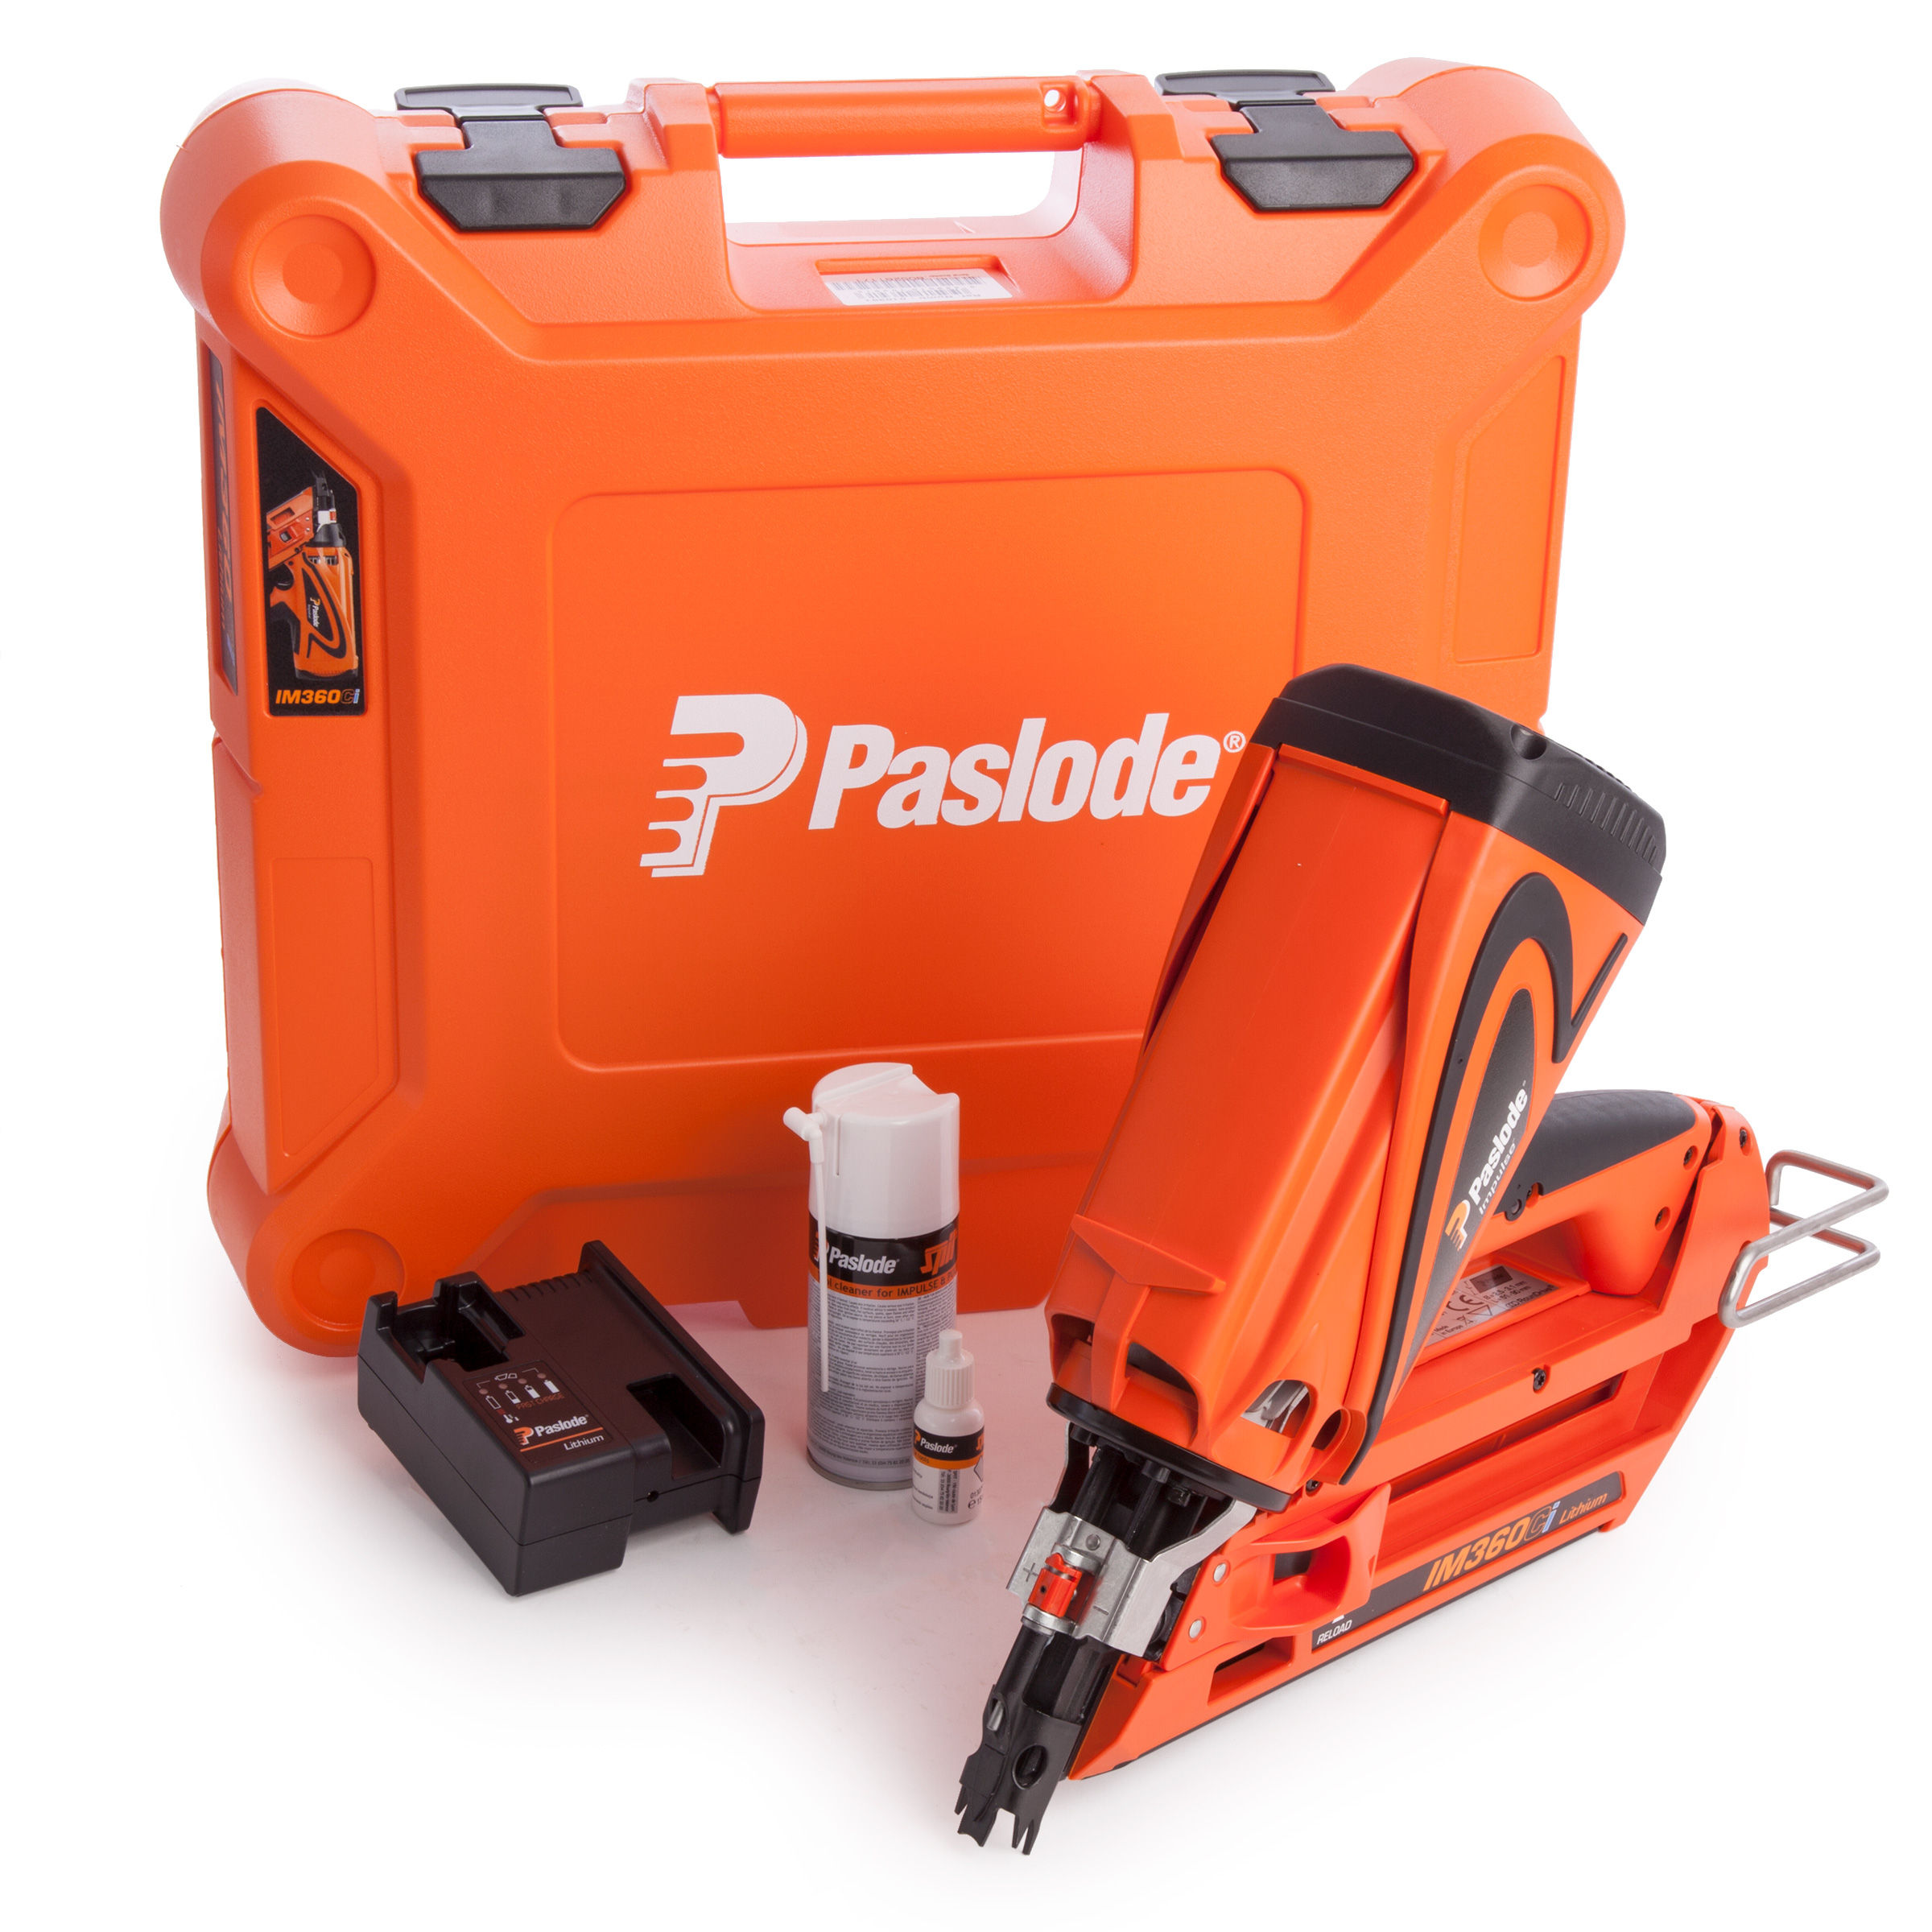 Toolstop Paslode Im360ci Cordless 7 2v 1st Fix Gas Framing